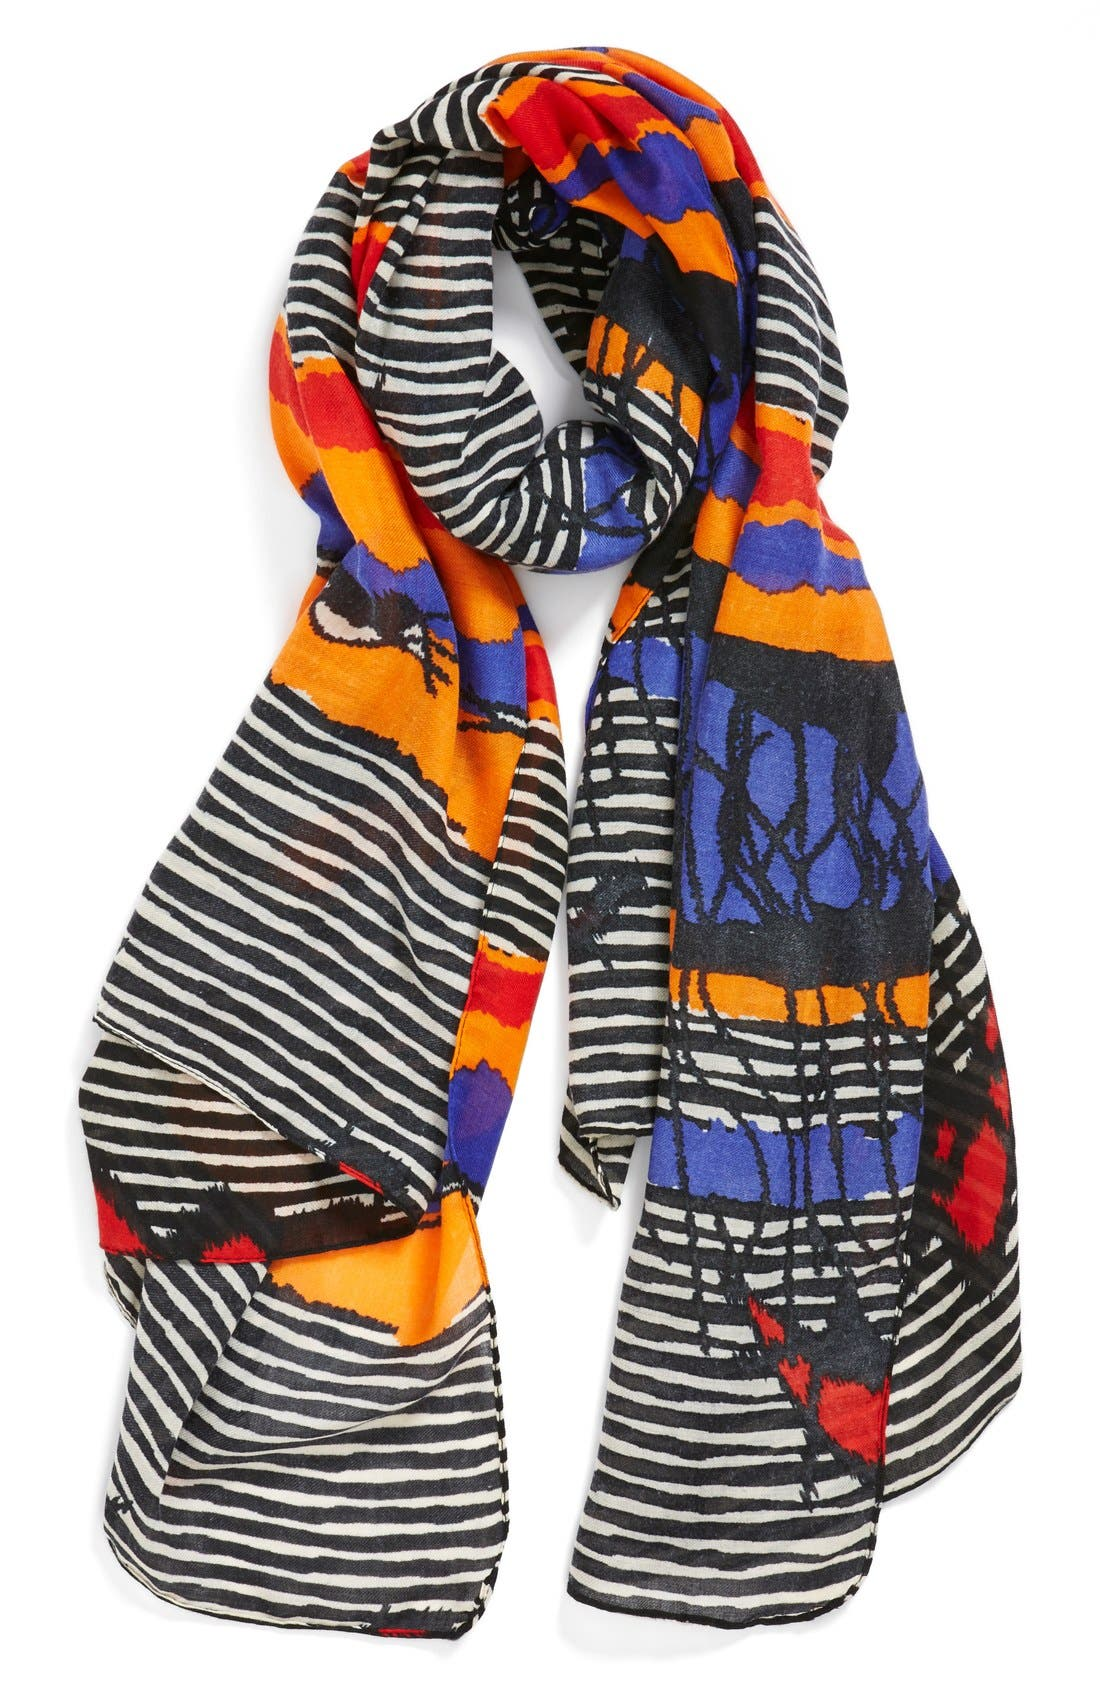 Alternate Image 1 Selected - Leith 'Abstract Safari' Oversized Oblong Scarf